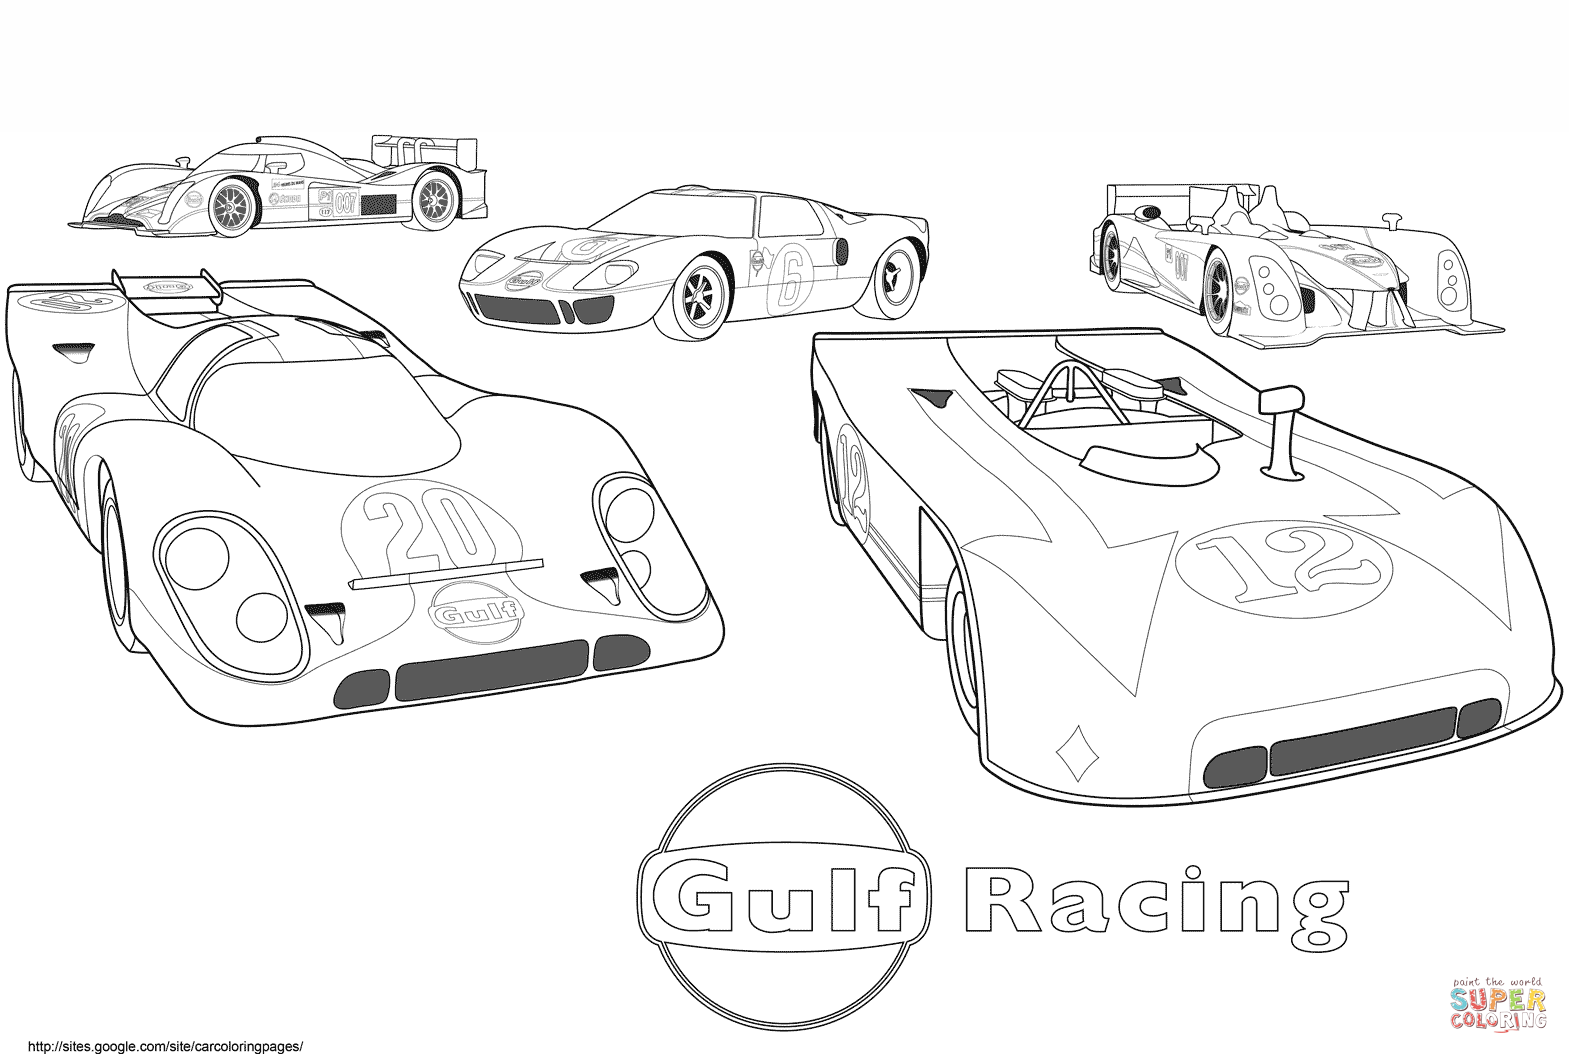 Gulf Racing Cars Coloring Page Free Printable Coloring Pages